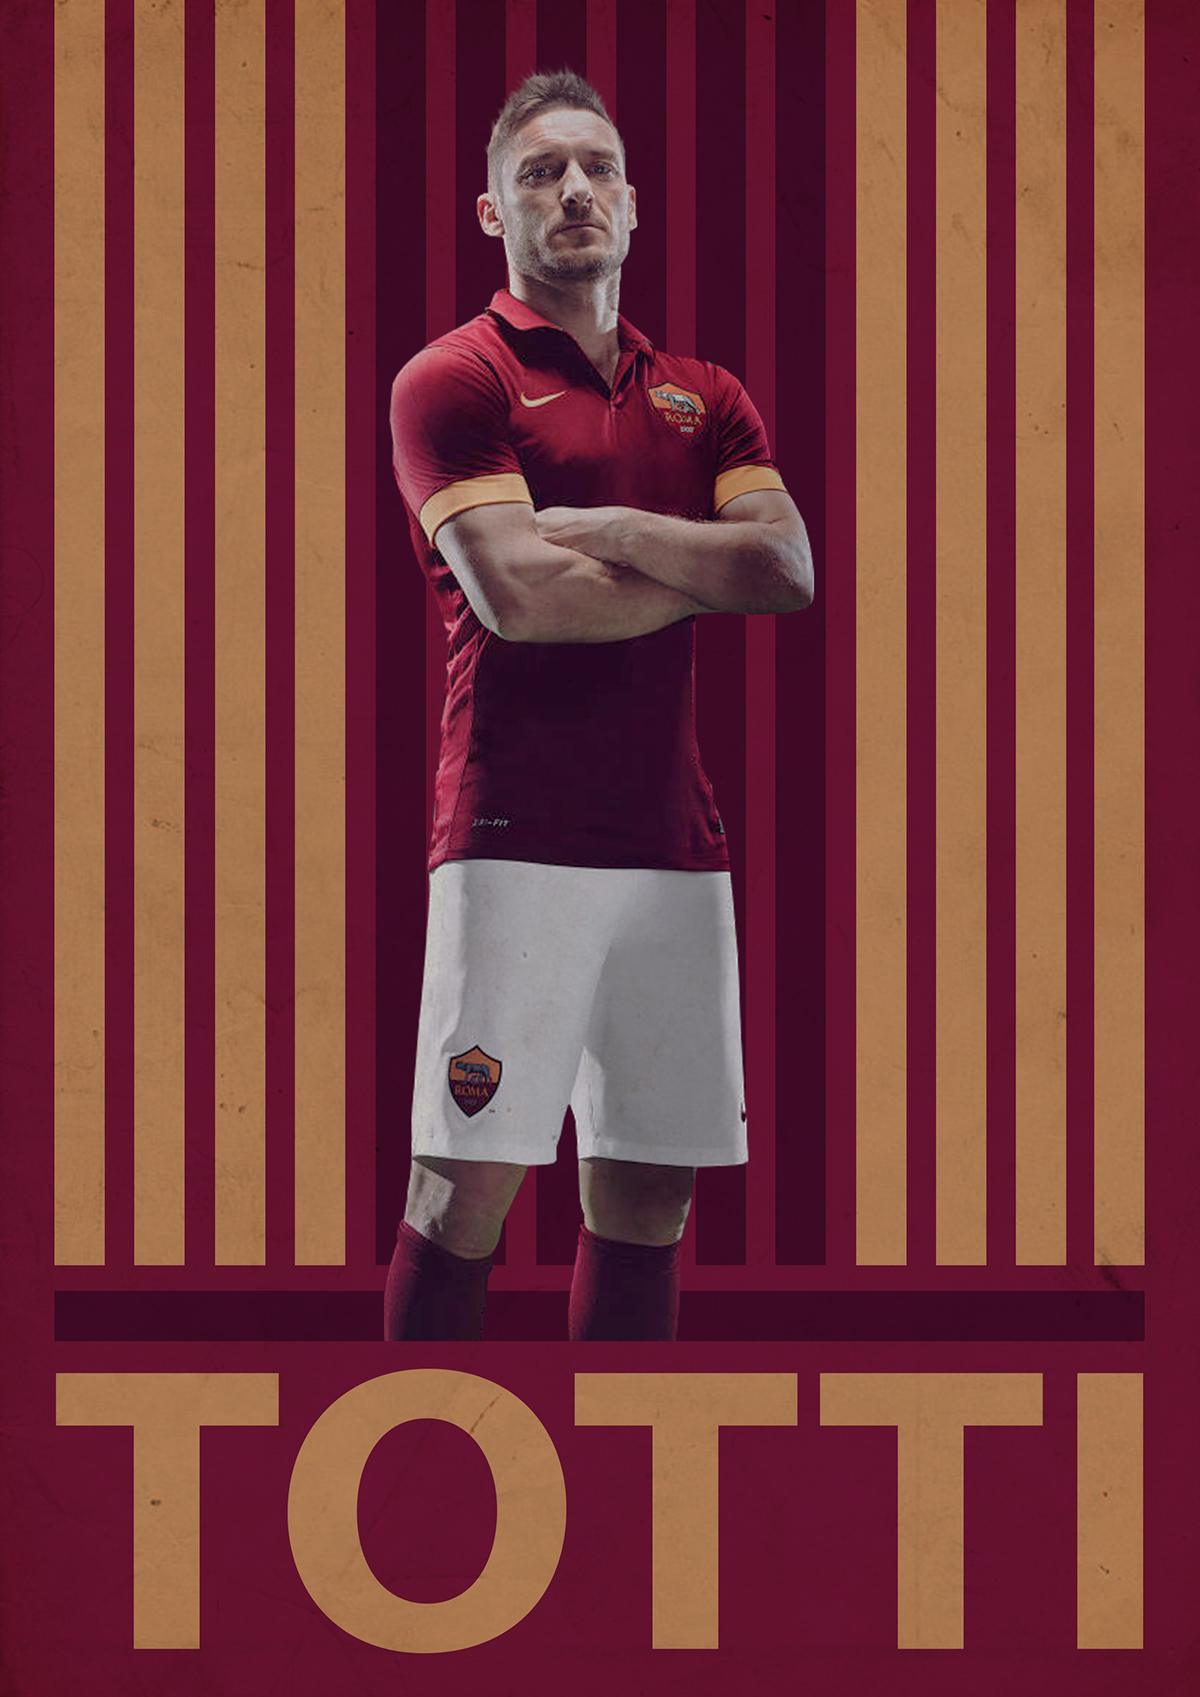 Football-Posters-on-Behance-wallpaper-wp4806474